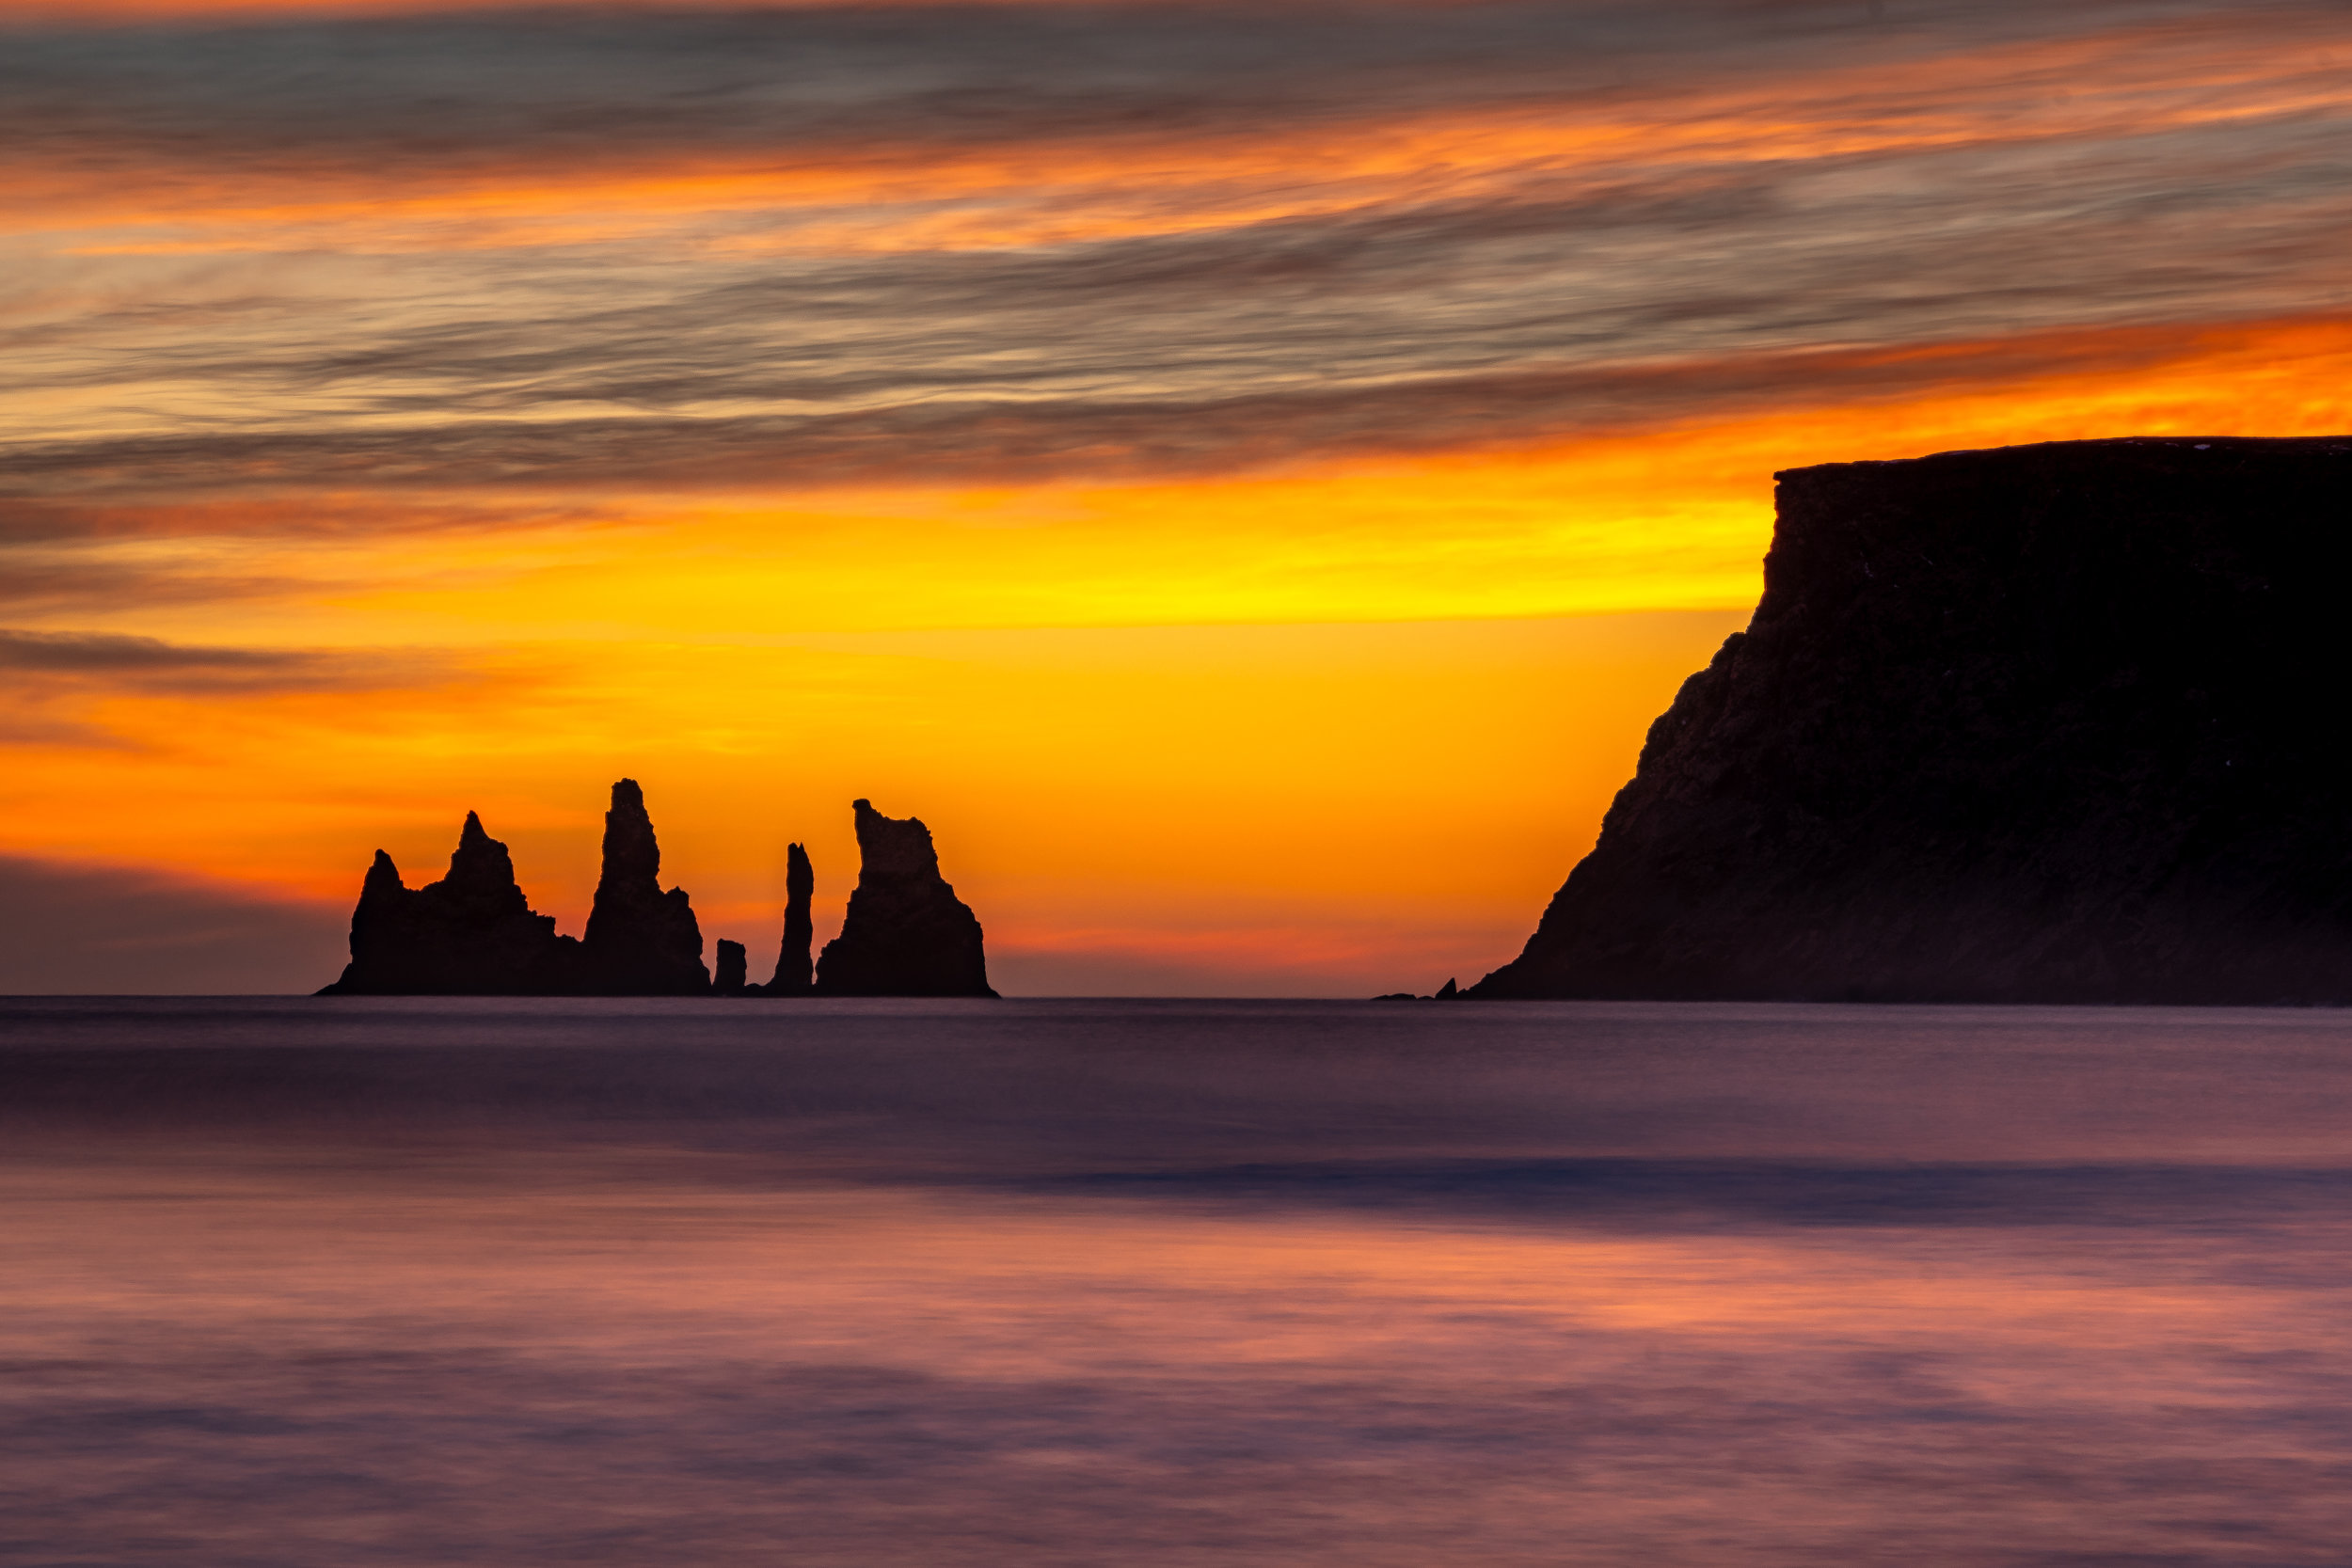 The Reynisdrangar sea stacks seen from Vik